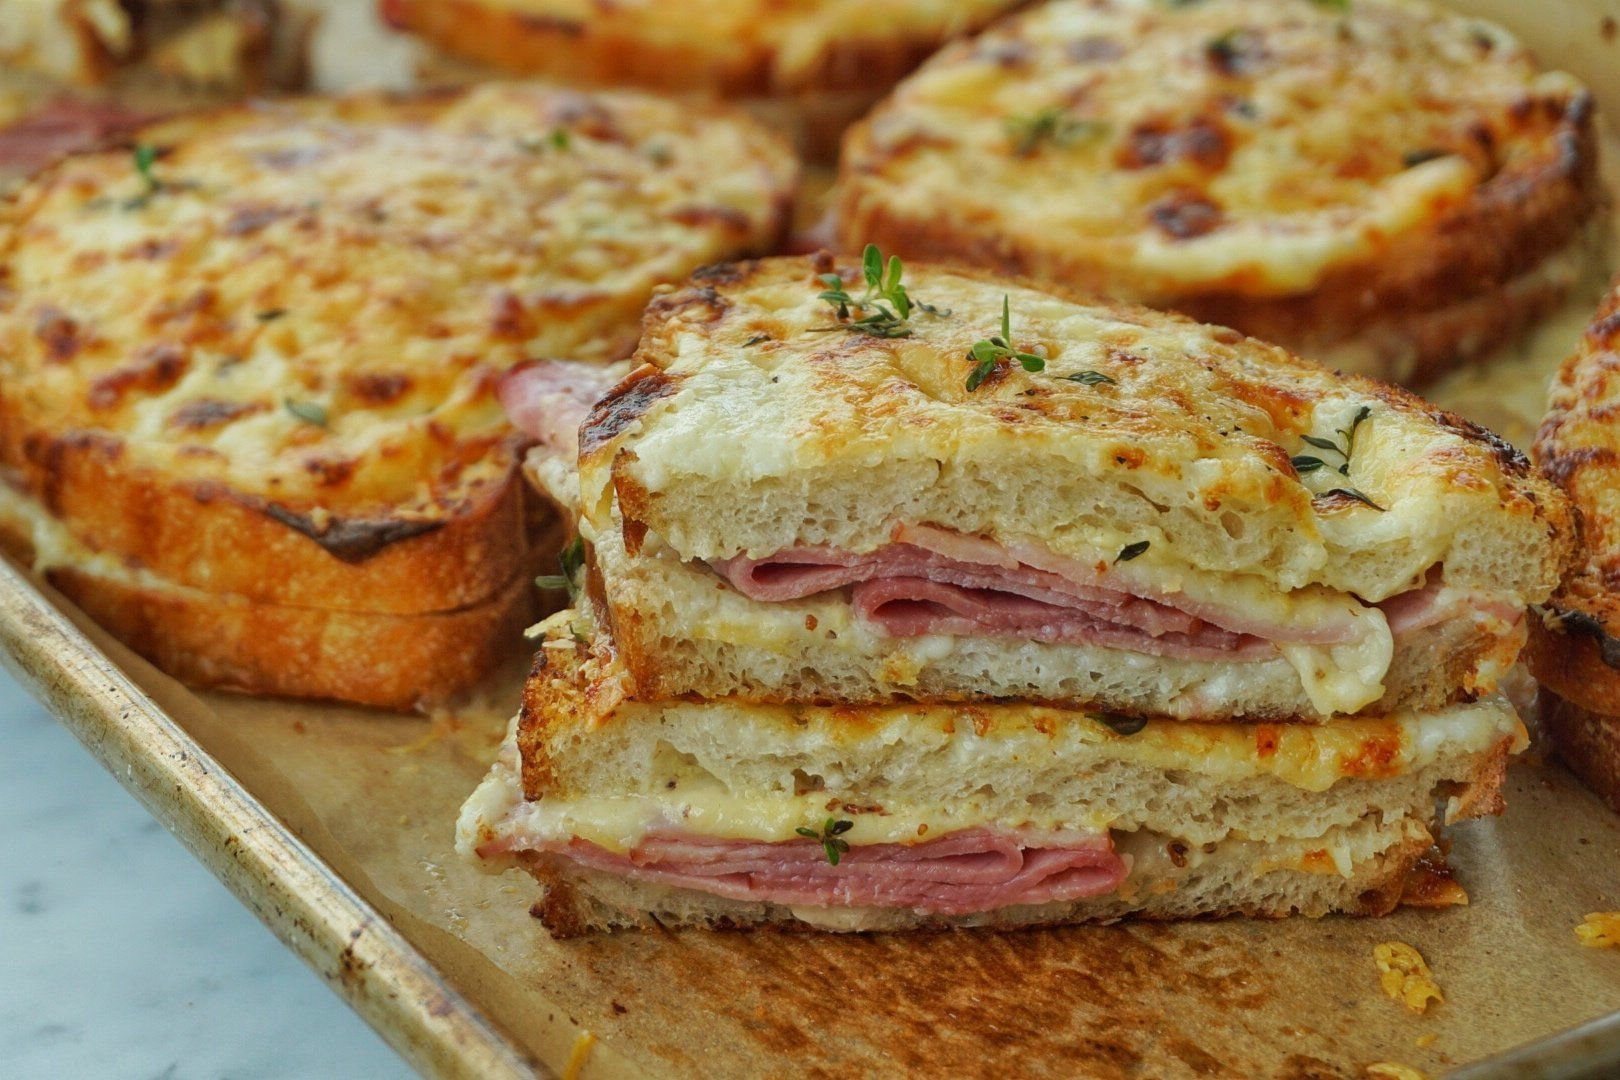 The Fancy French Ham And Cheese Sandwich You Need In Your Life